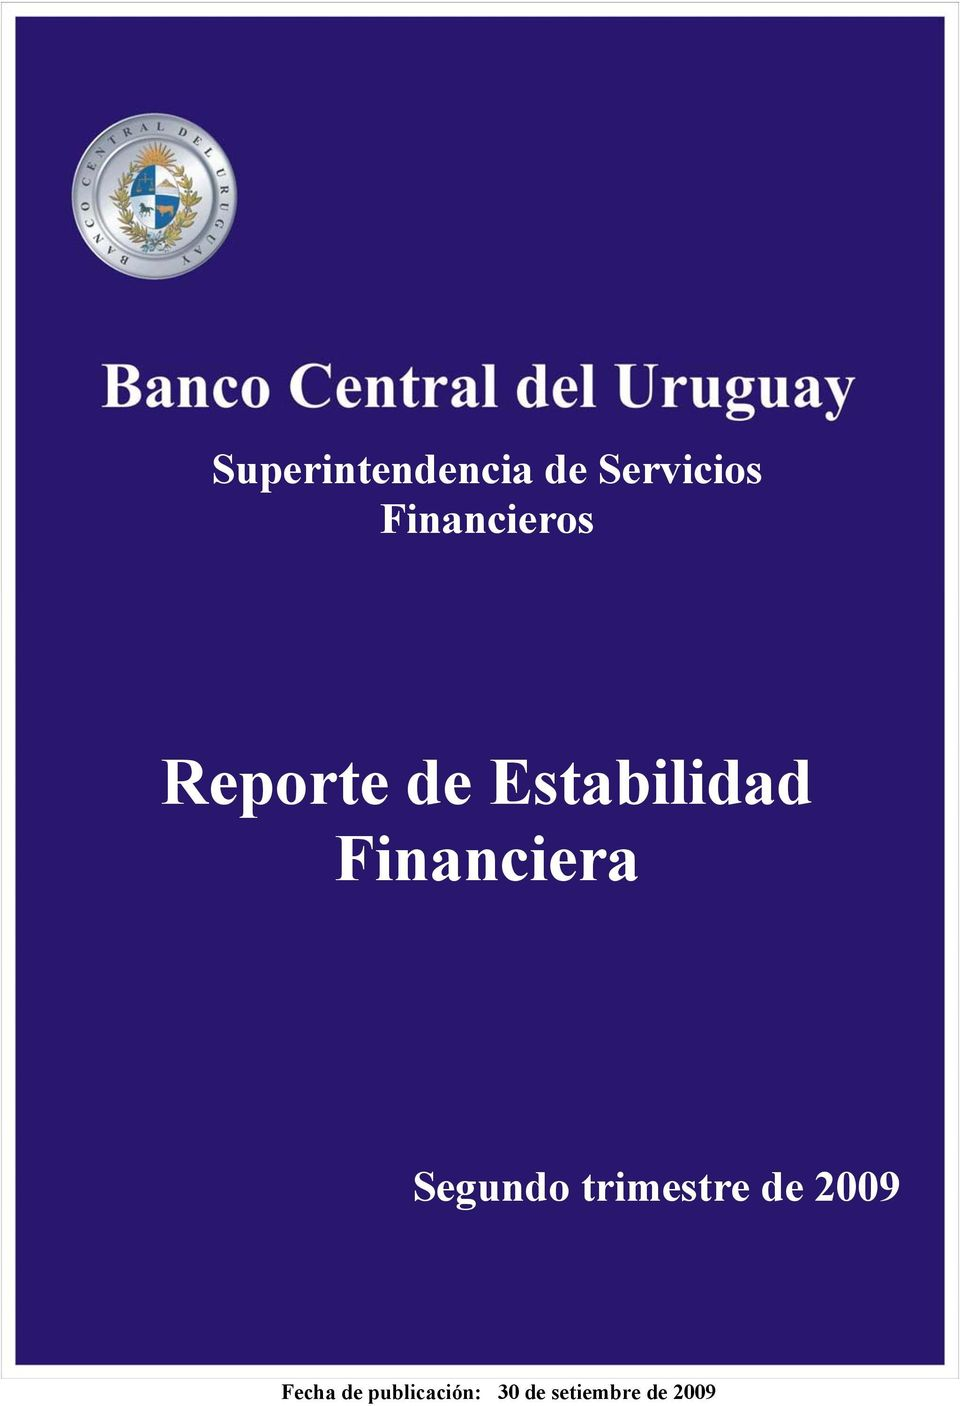 Financiera Segundo trimestre de 2009